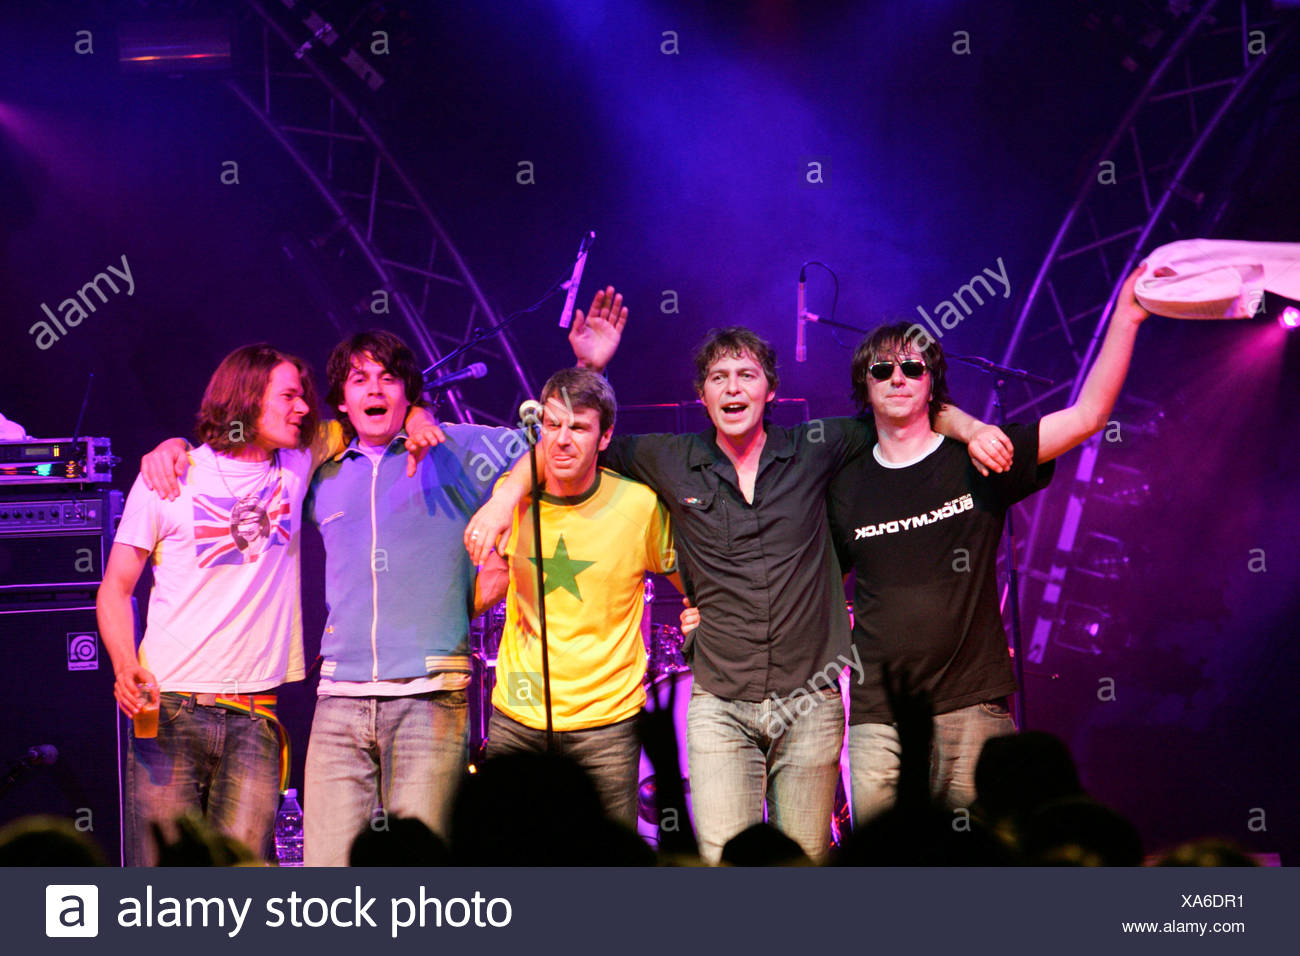 German pop group Fool's Garden performing live at Openquer in Zell, Lucerne, Switzerland Stock Photo